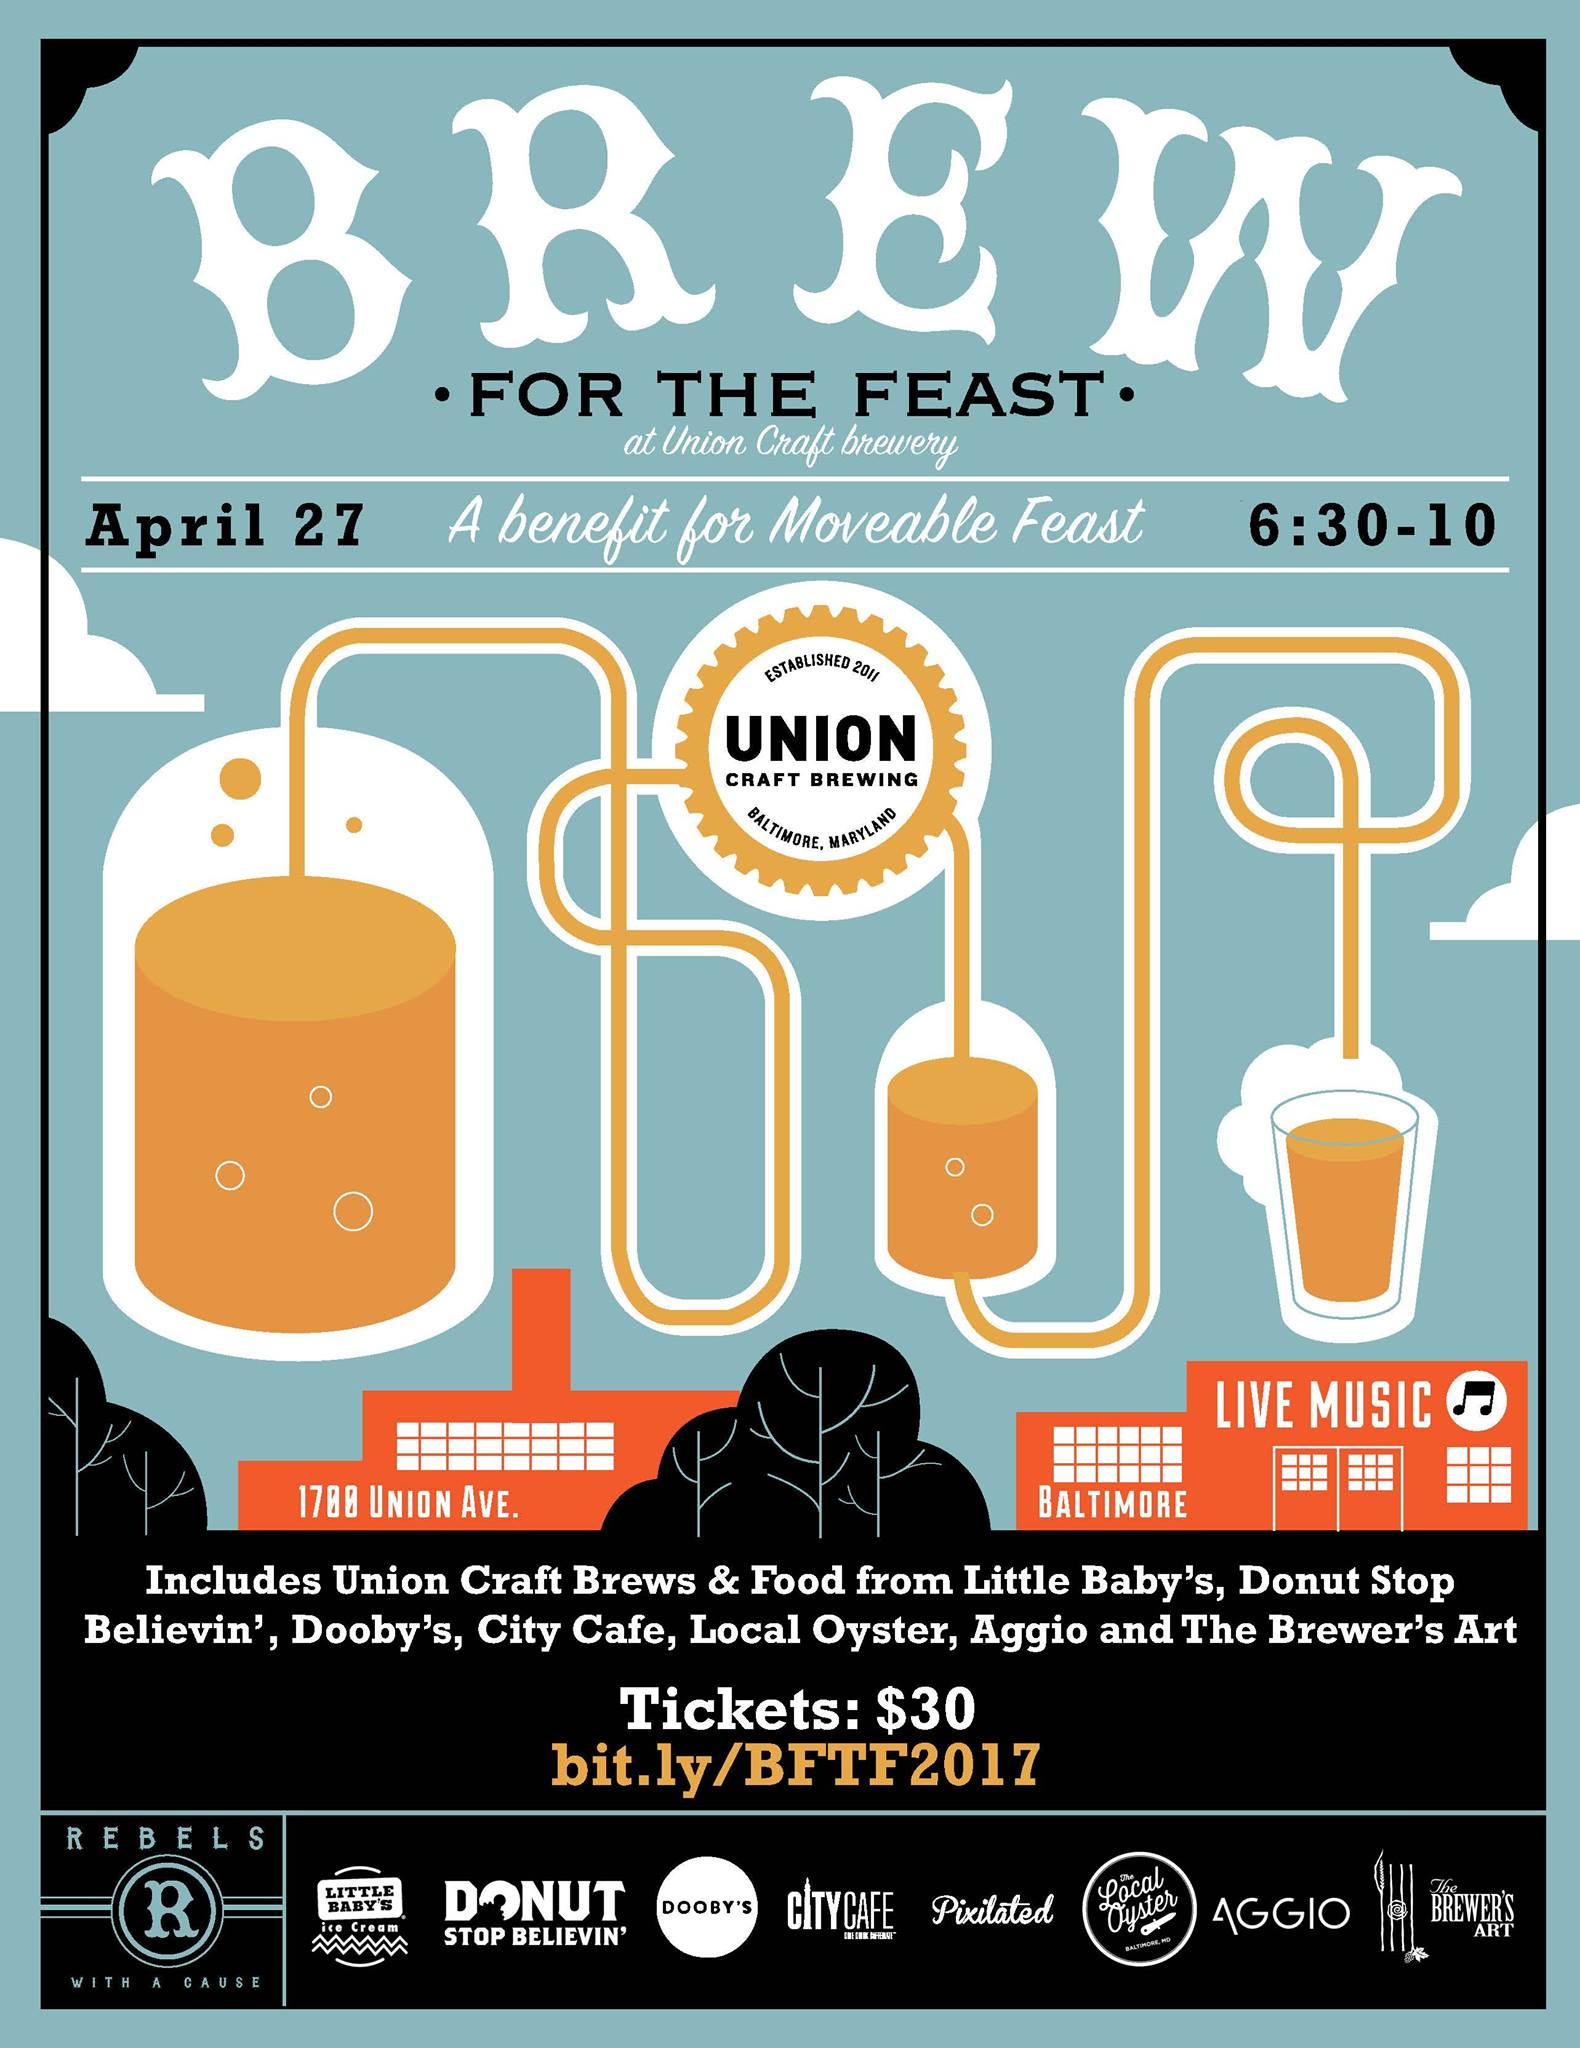 Union craft brewing fifth annual brew for the feast for Union craft brewing baltimore md